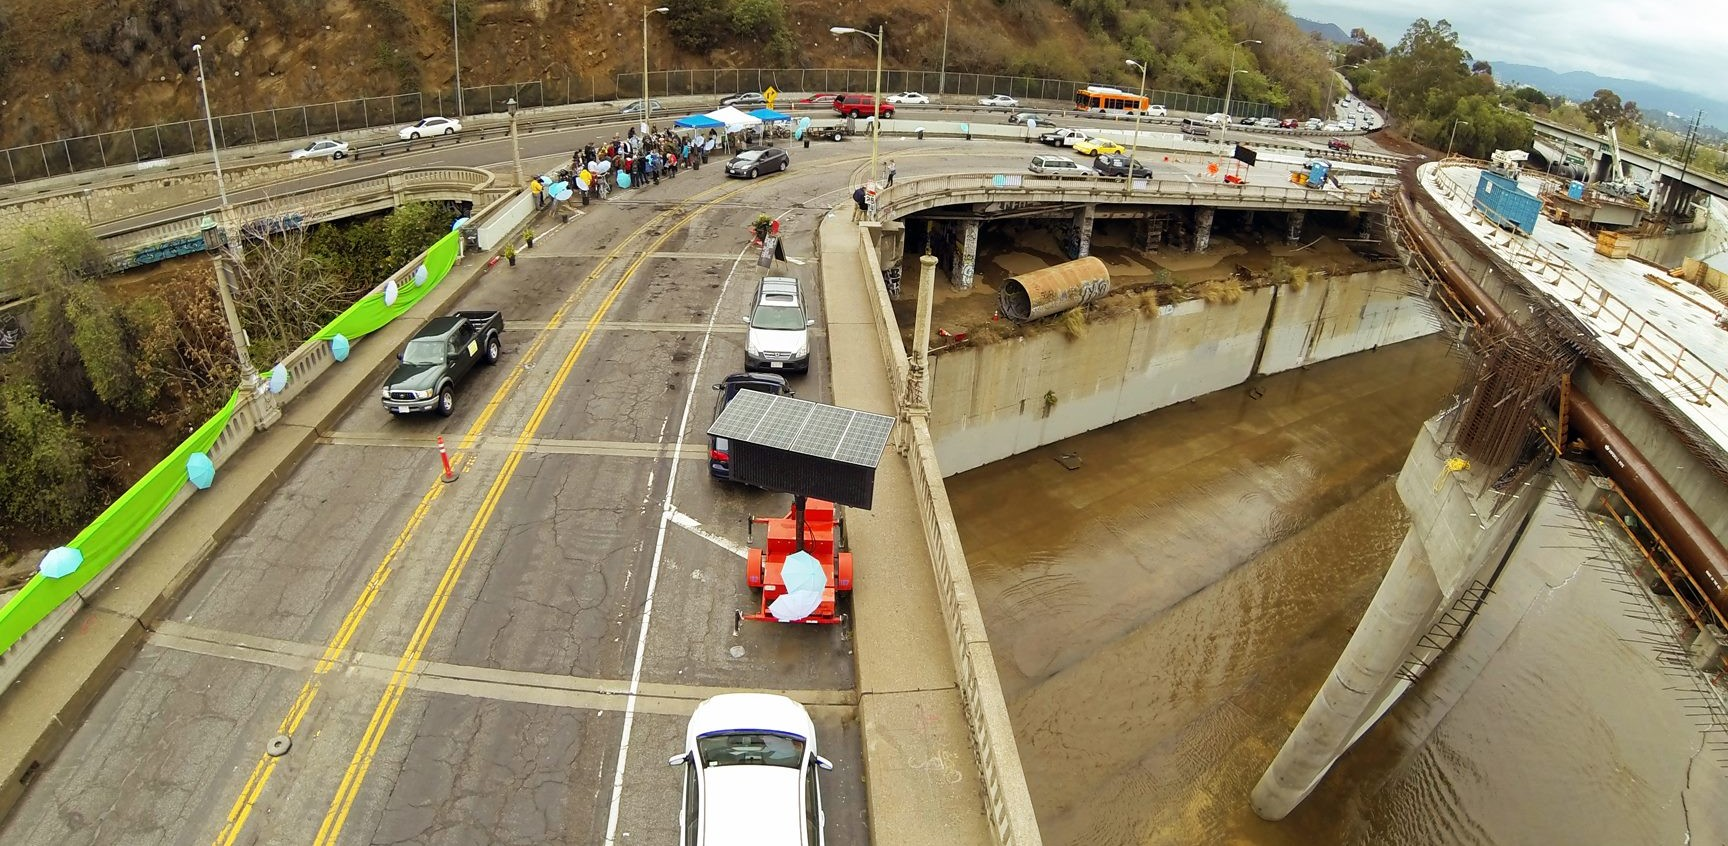 Landbridge proponents staged a pop-up party on the Riverside Figueroa Bridge over the Los Angeles River. The new replacement bridge is on the